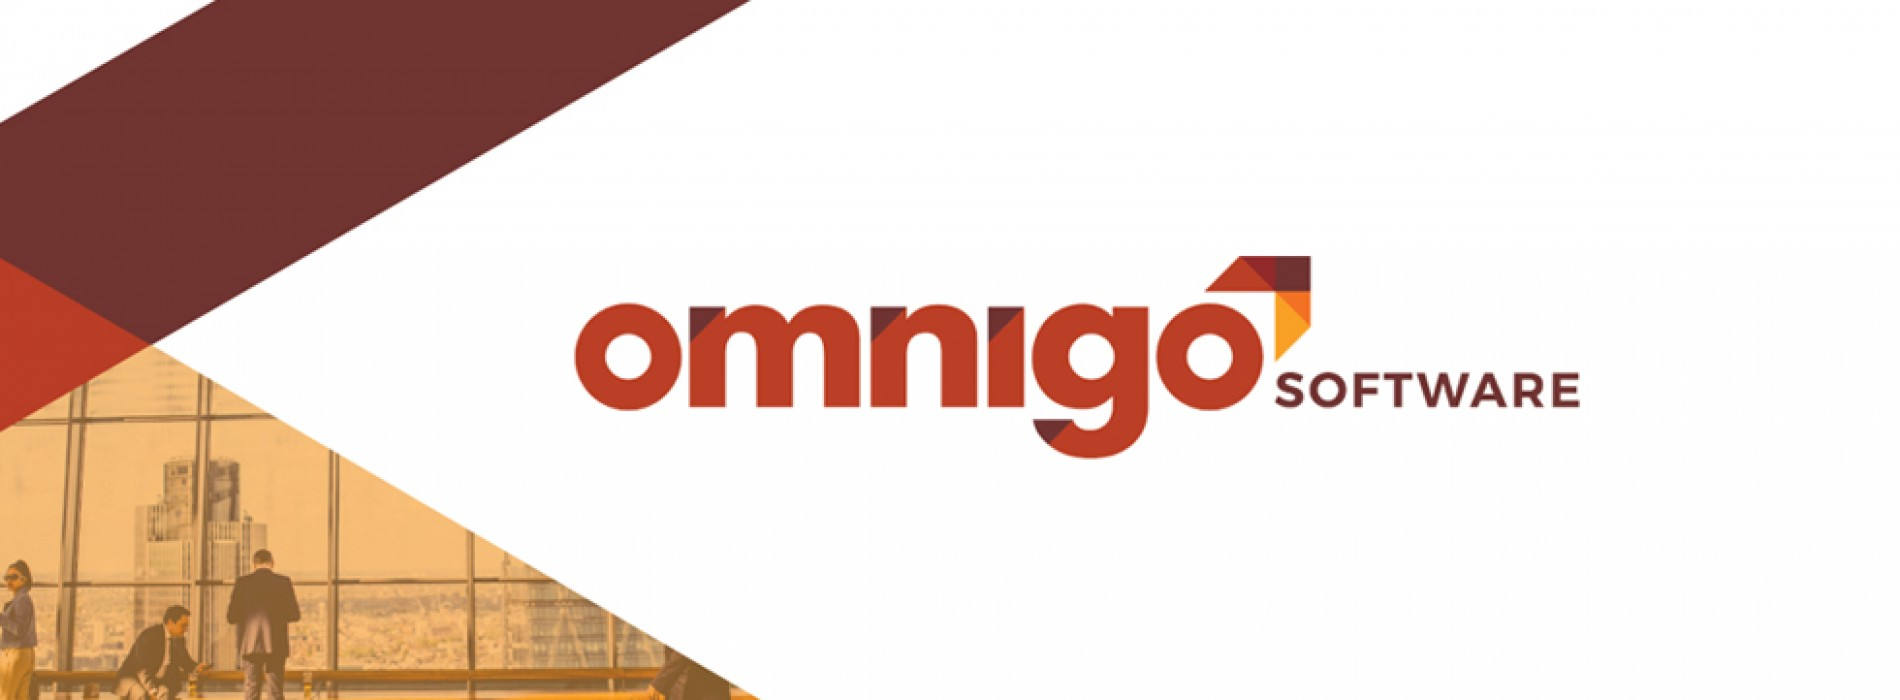 Omnigo Software acquires iView Systems, adding gaming and hospitality expertise to growing law enforcement and public safety solutions portfolio